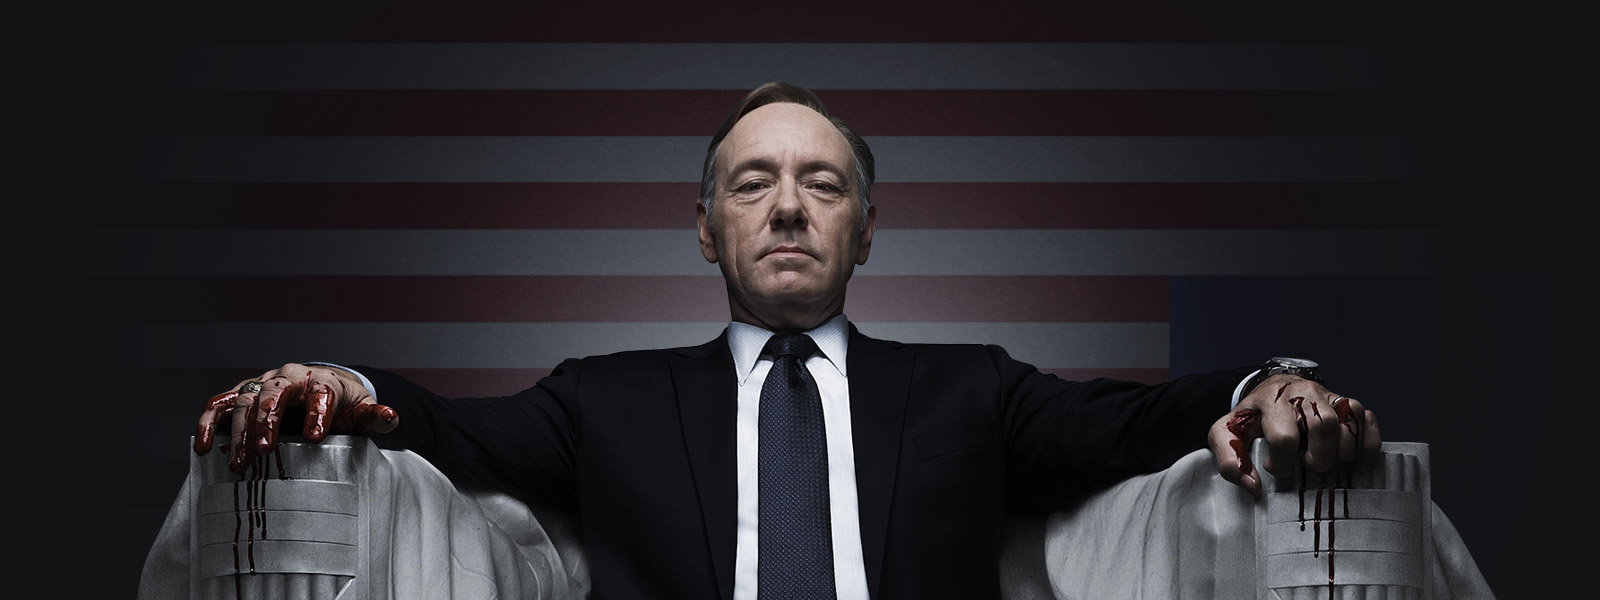 How does Charlie stack up against House of Cards?